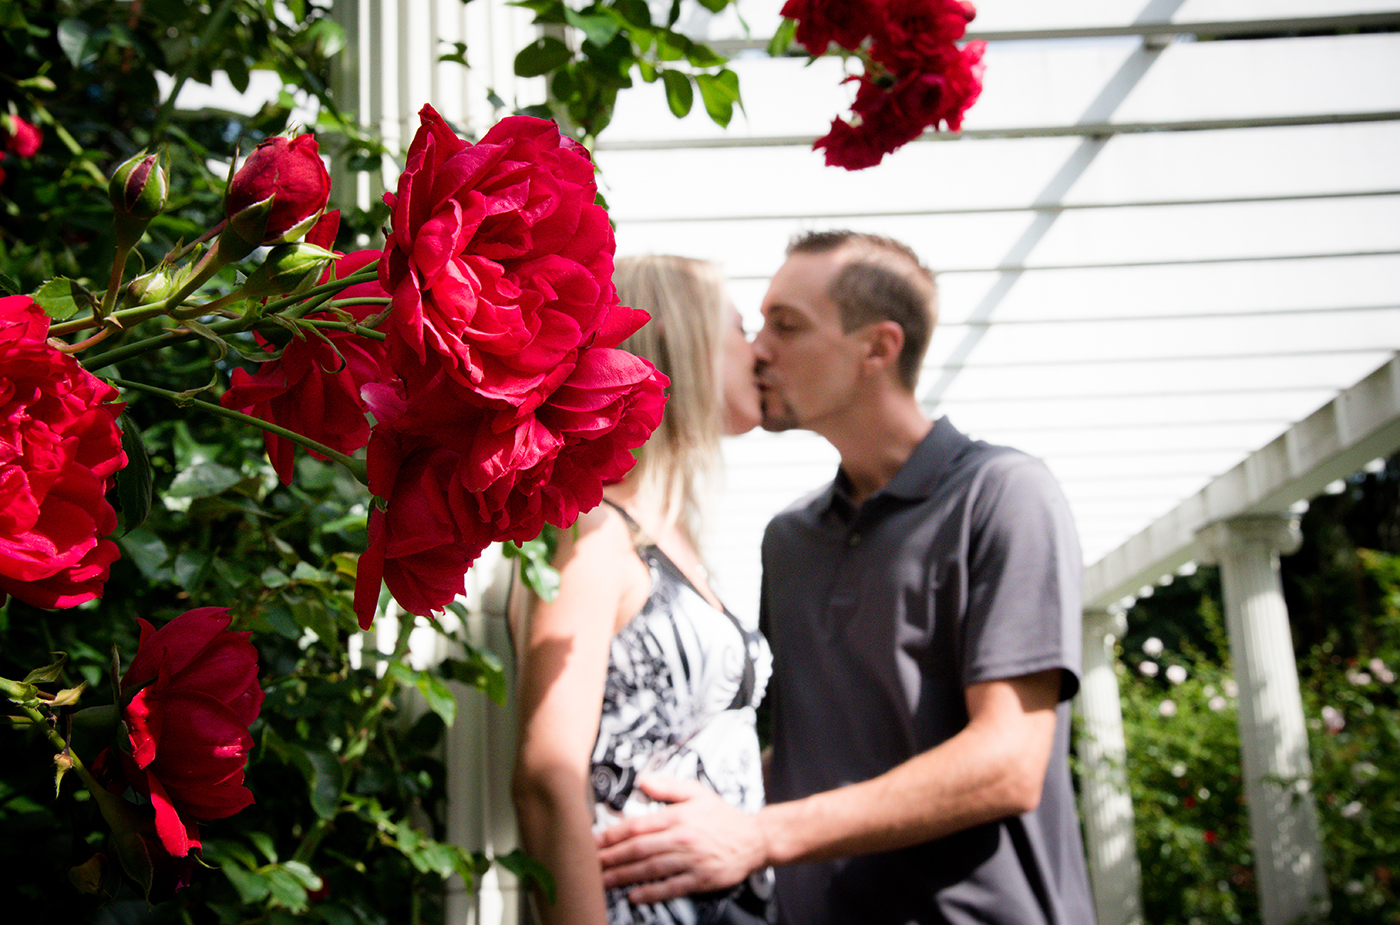 All Occasions Photography Albany NY - Engagement Photography Couple by Roses